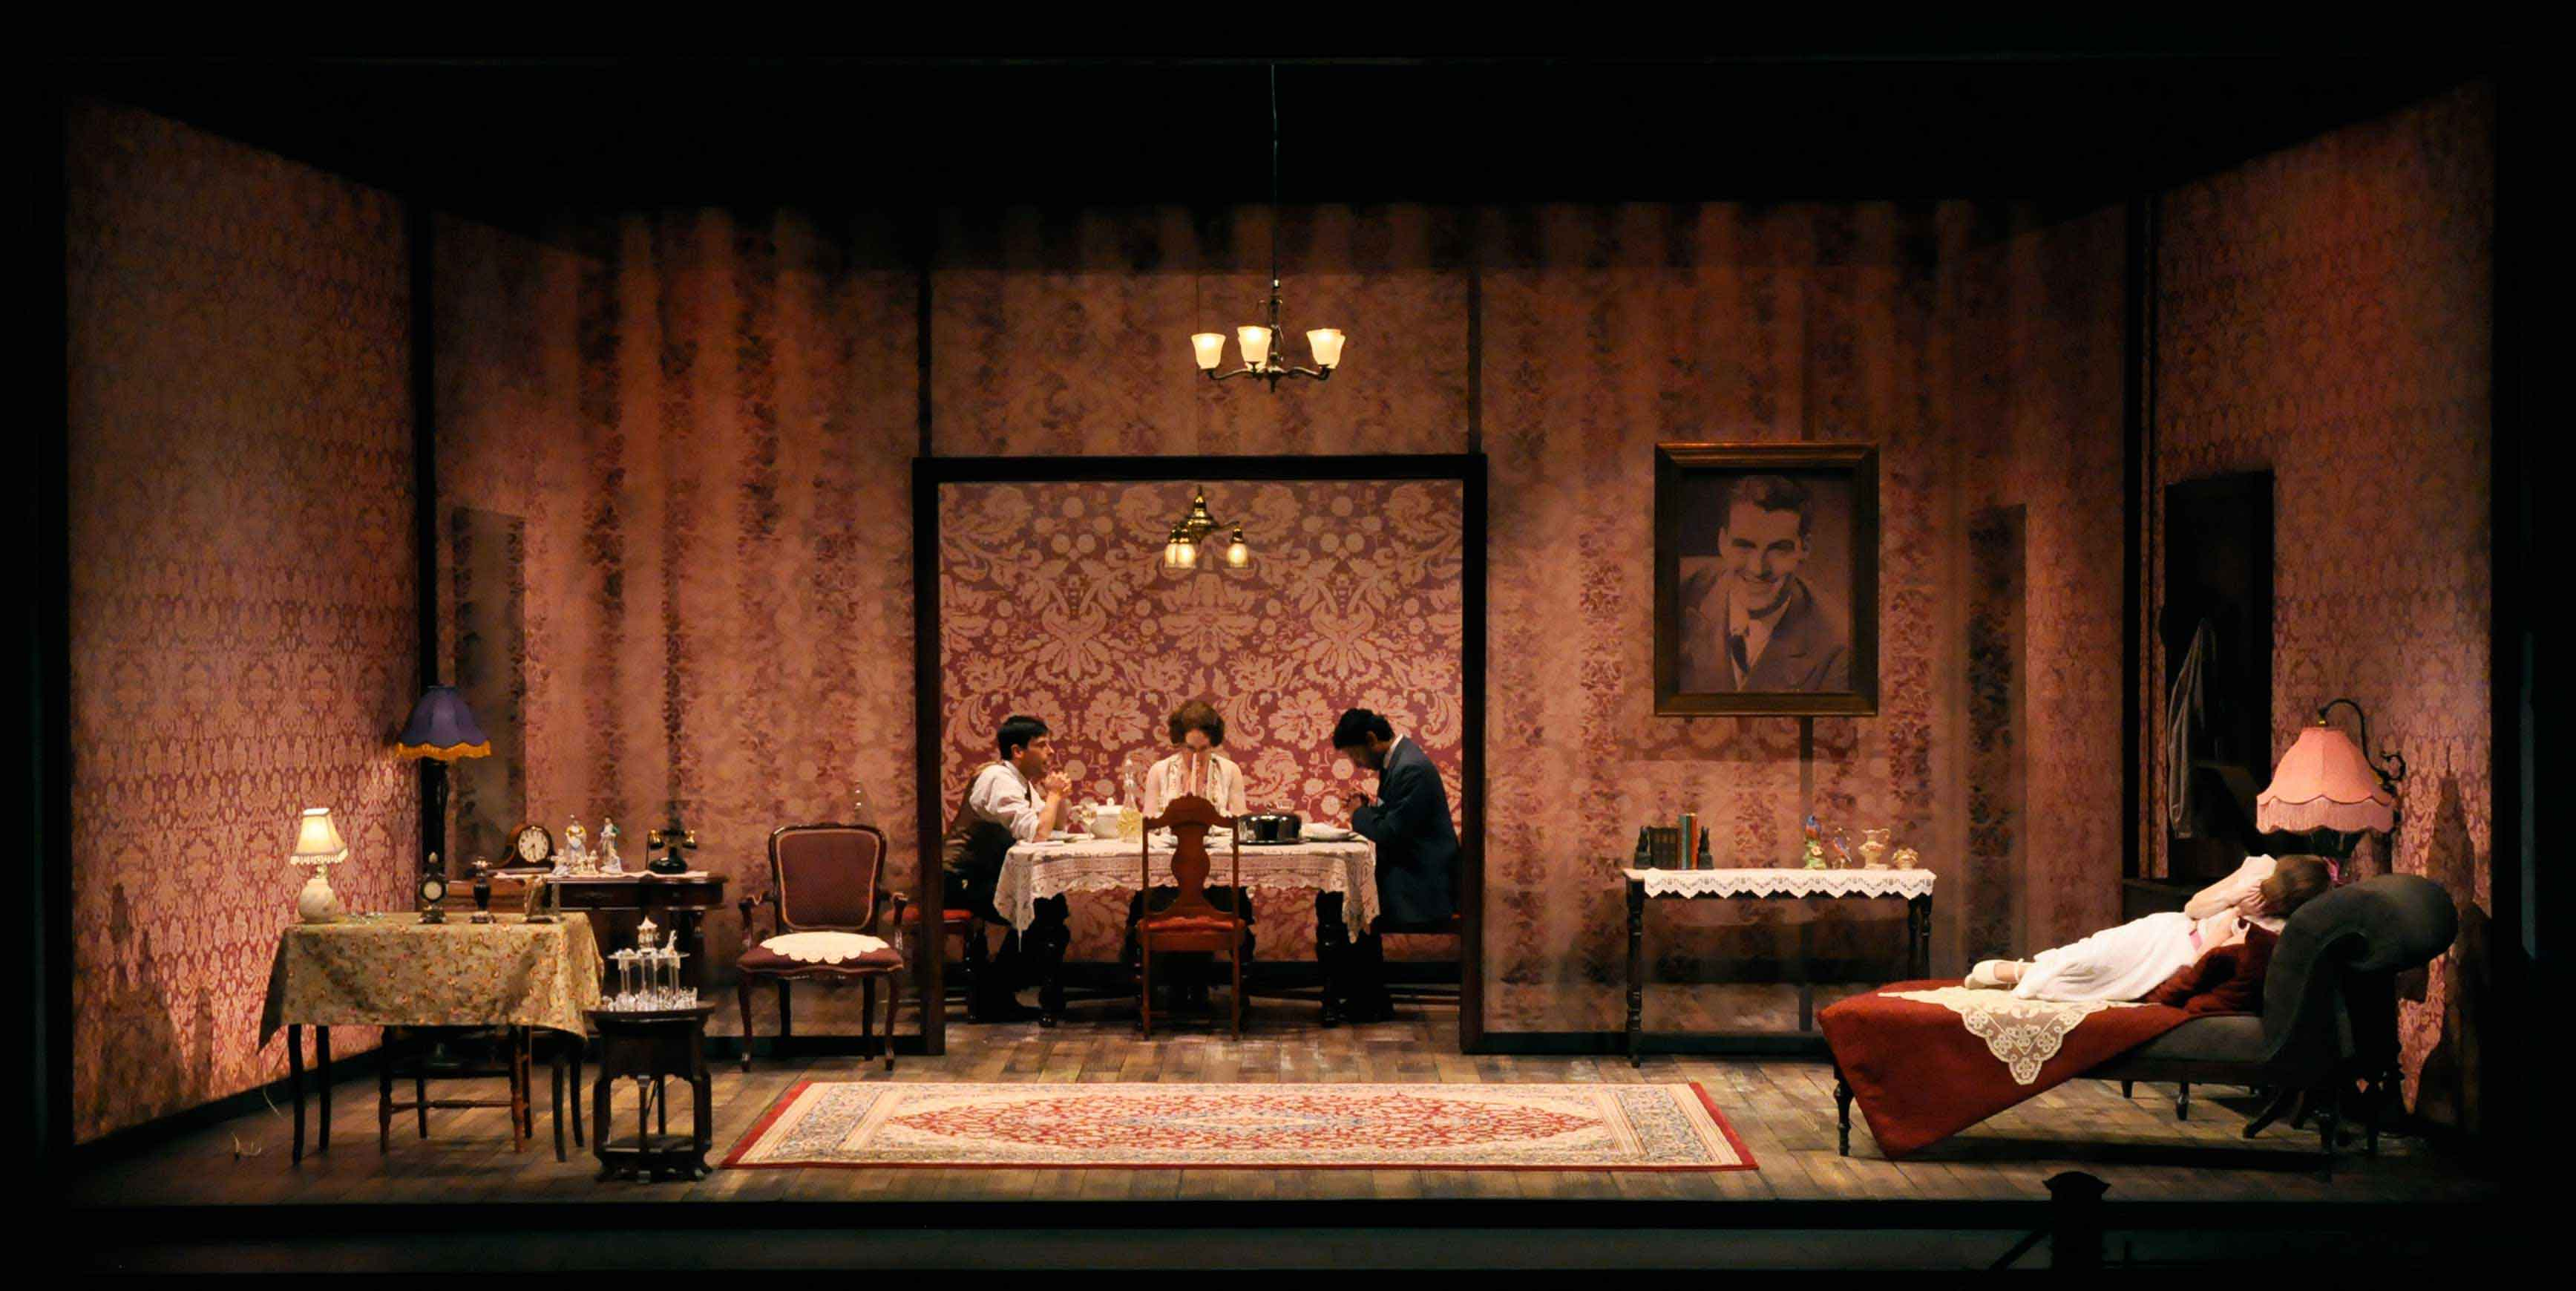 the use of symbolism in the play the glass menagerie by tennessee williams The glass menagerie: the glass menagerie, one-act drama by tennessee williams, produced in 1944 and published in 1945 the glass menagerie launched williams's career and is considered by some critics to be his finest drama.